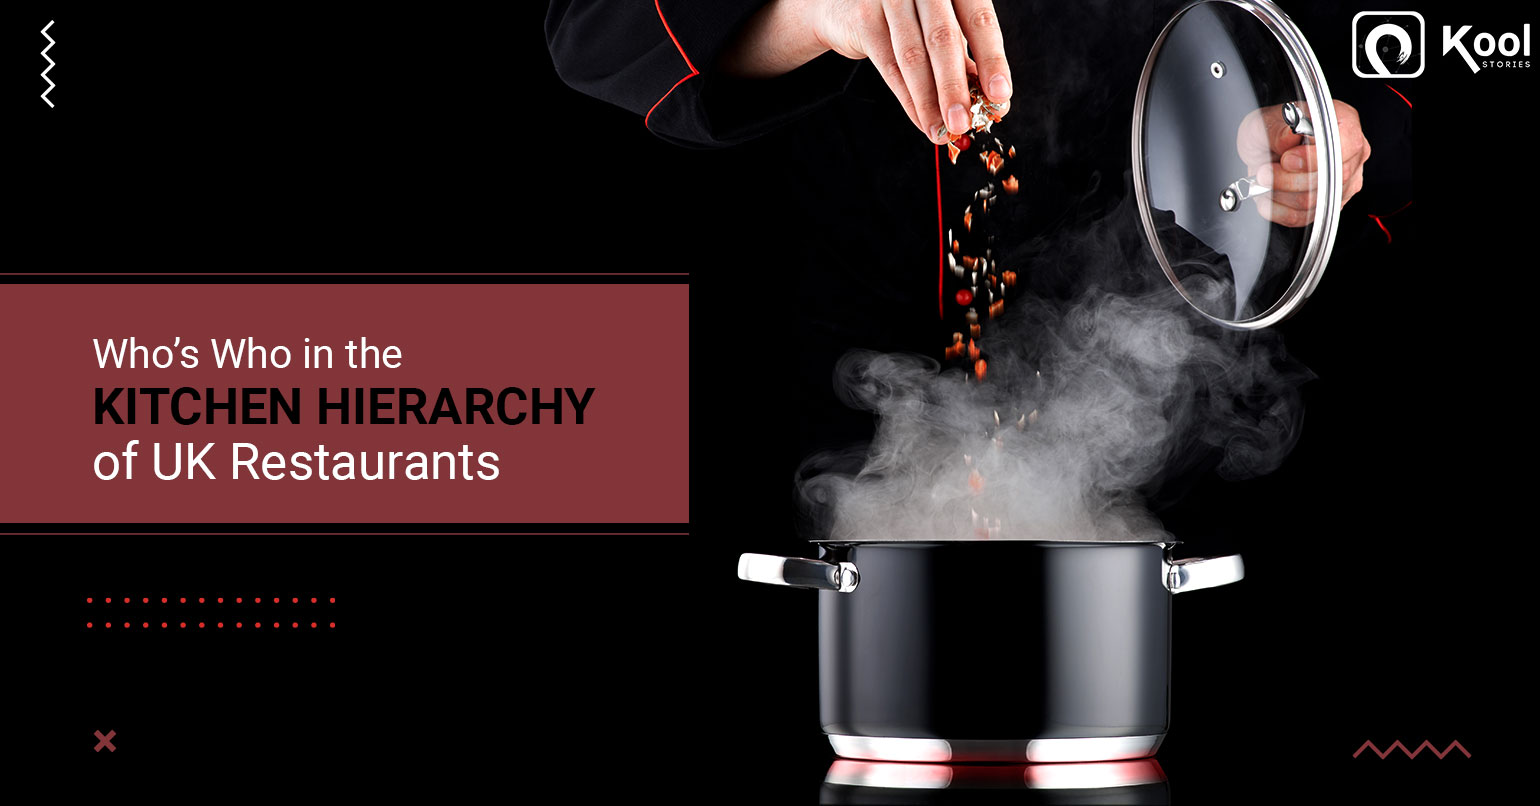 Who's Who in the Kitchen Hierarchy of UK Restaurants